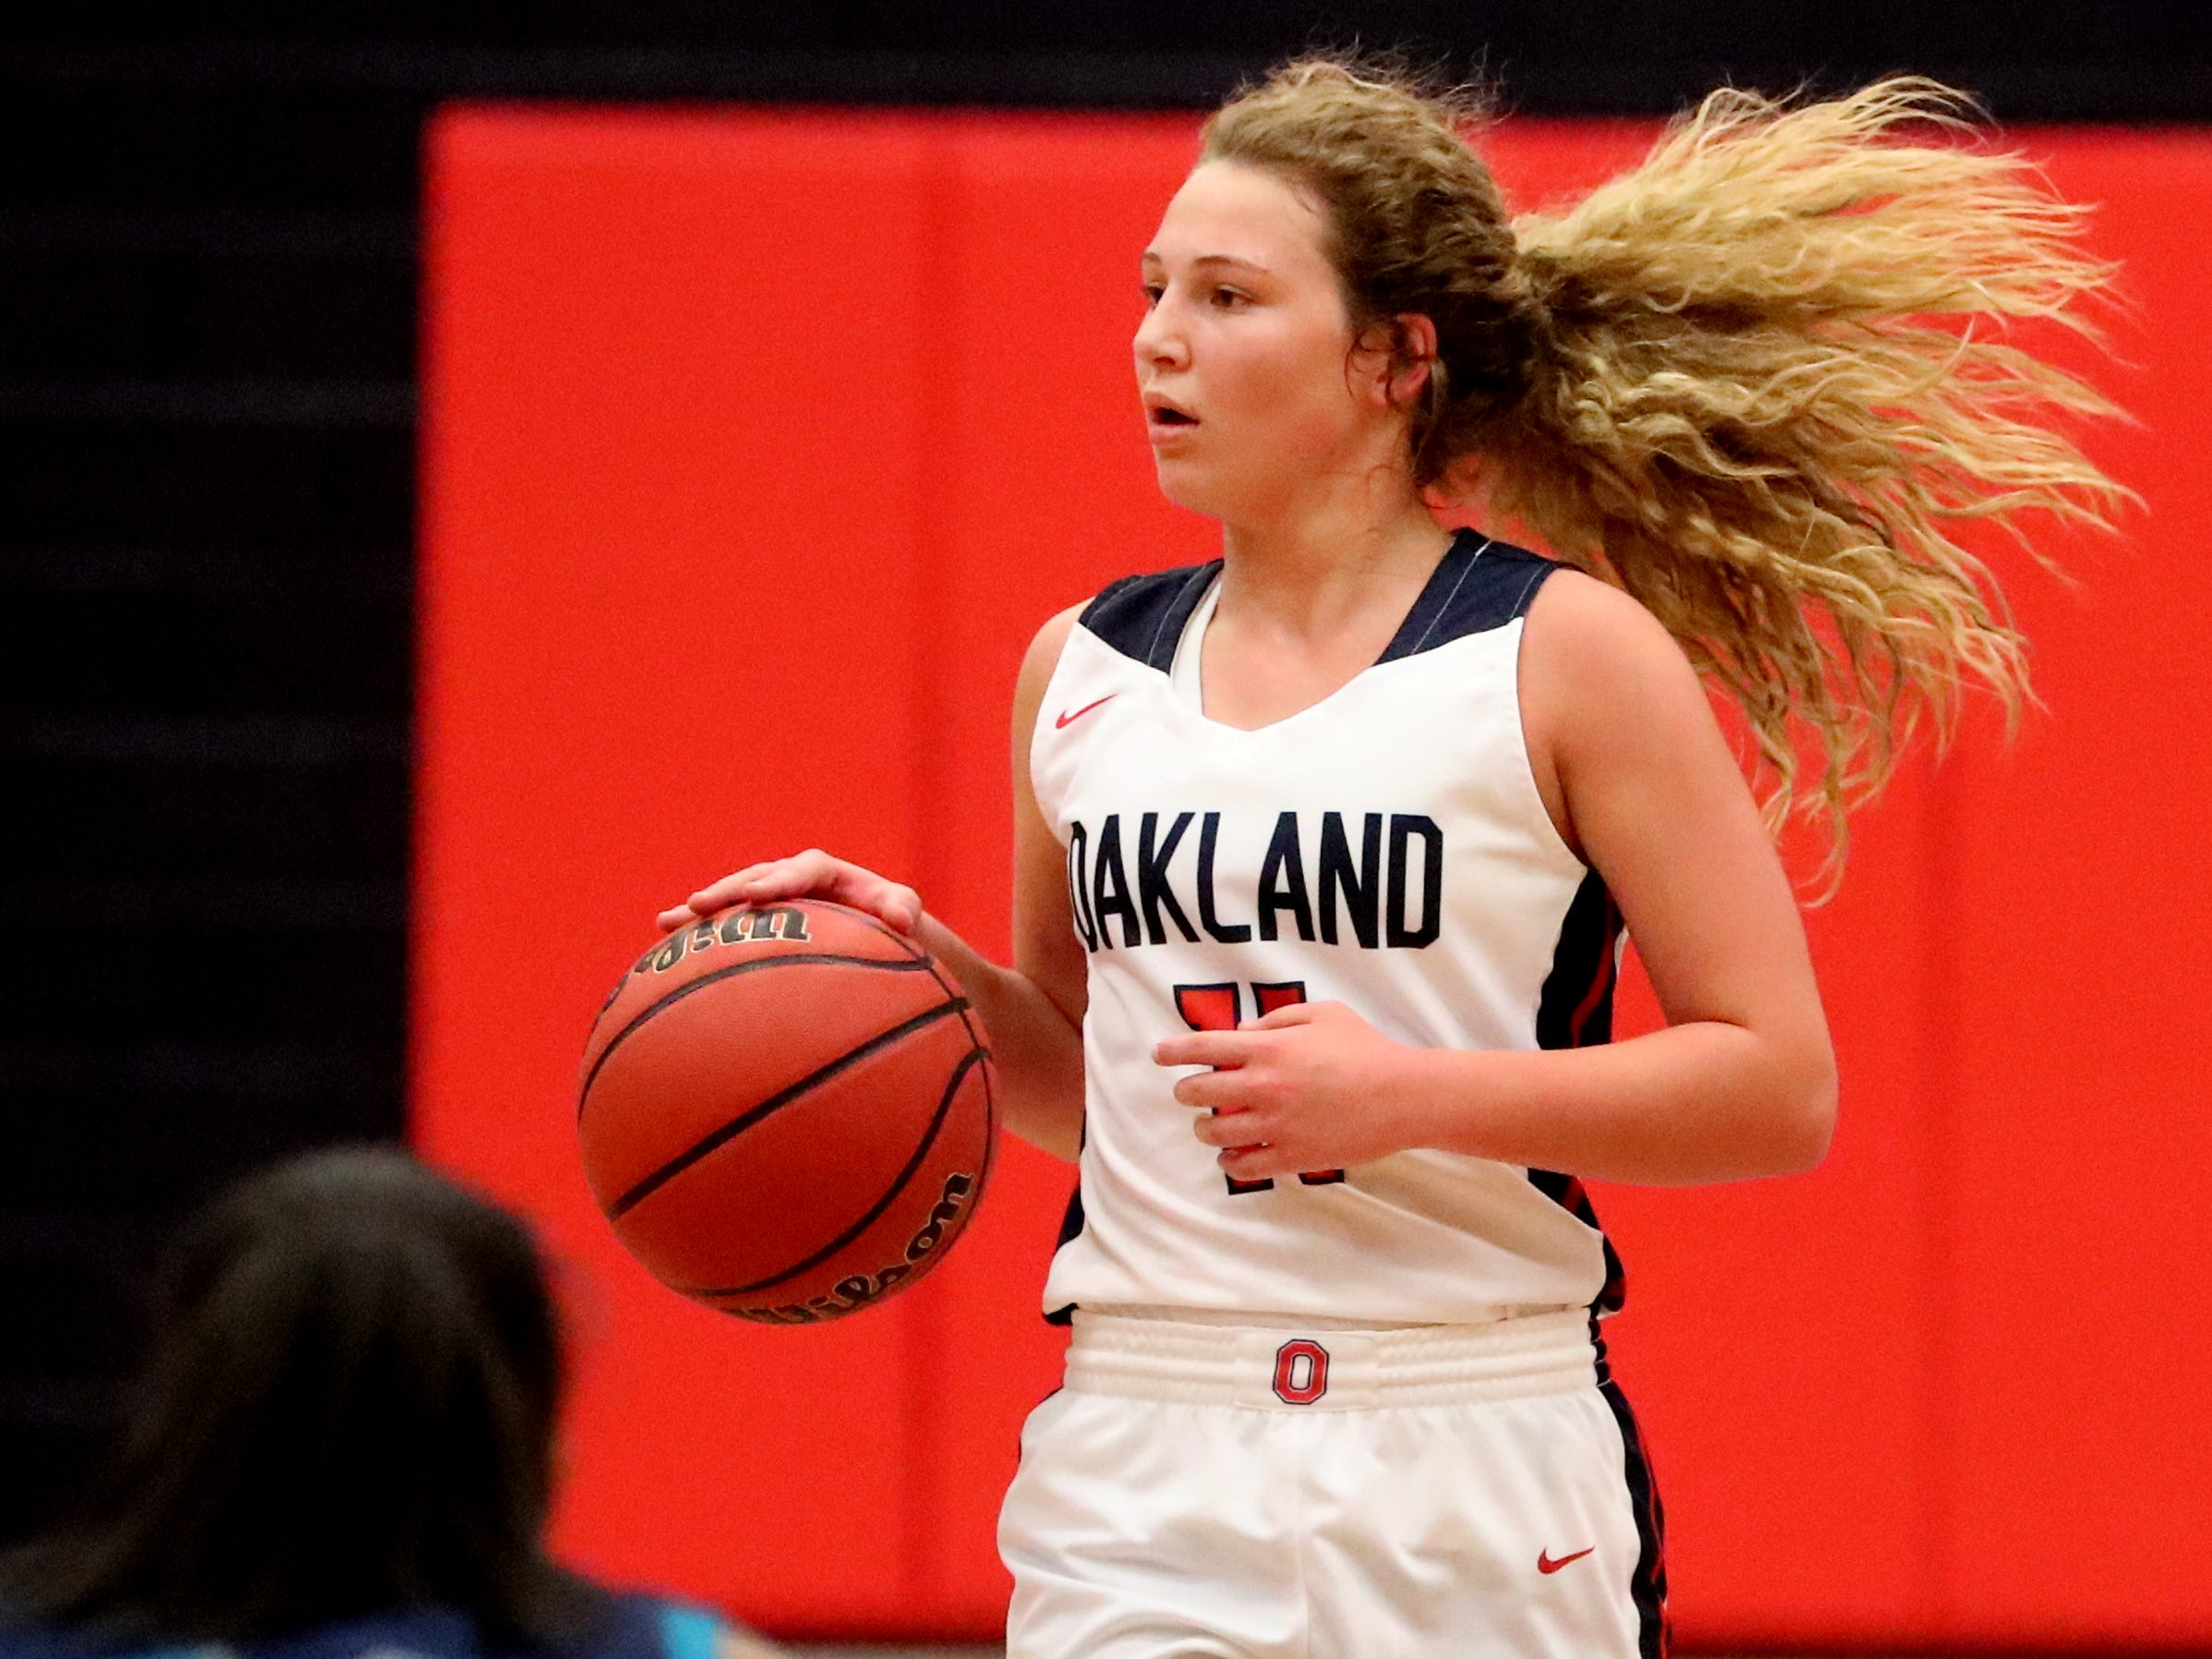 Oakland's Claira McGowan (11) brings the ball down the court during the game against Siegel at Oakland on Tuesday, Dec. 4, 2018.